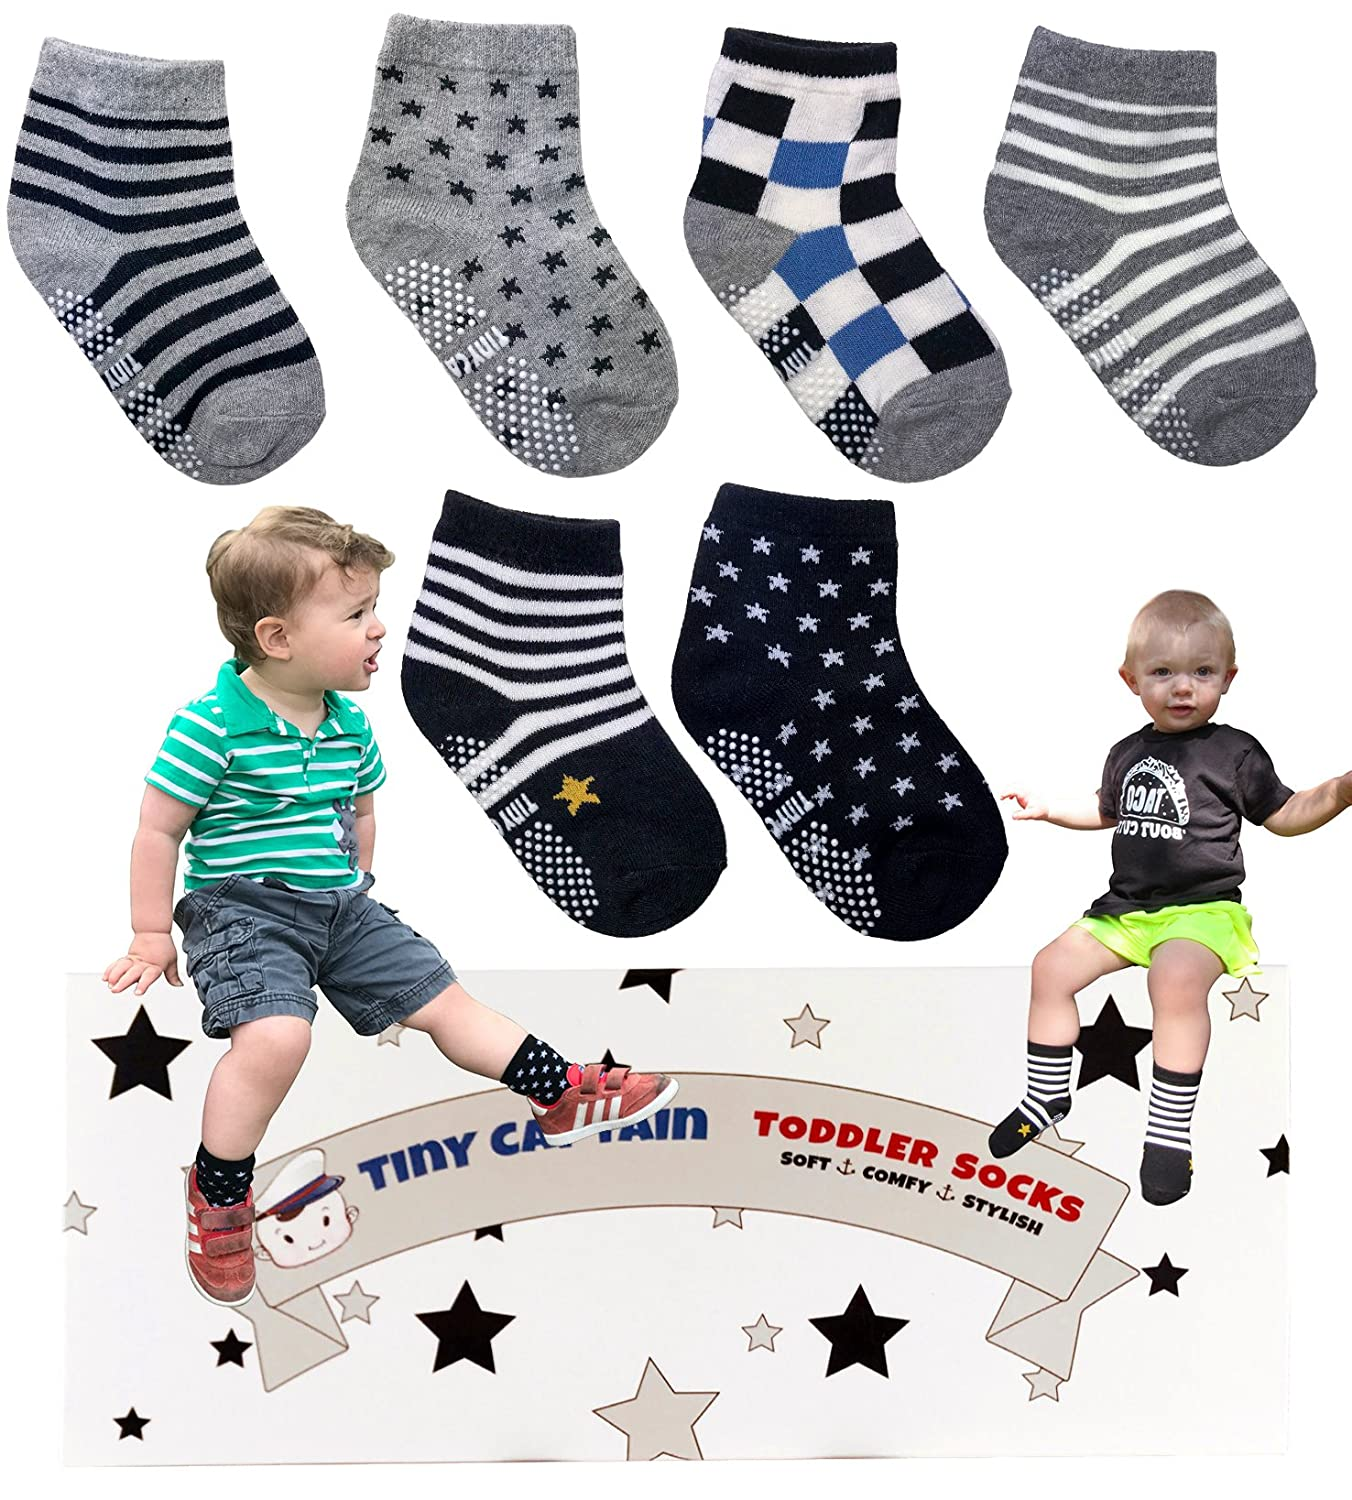 Best Gift for 1-3 Year Old Boys Baby Gifts Anti Slip Non Skid Grip Socks Gift Set by Tiny Captain Toddler Boy Non Slip Socks Red and Black